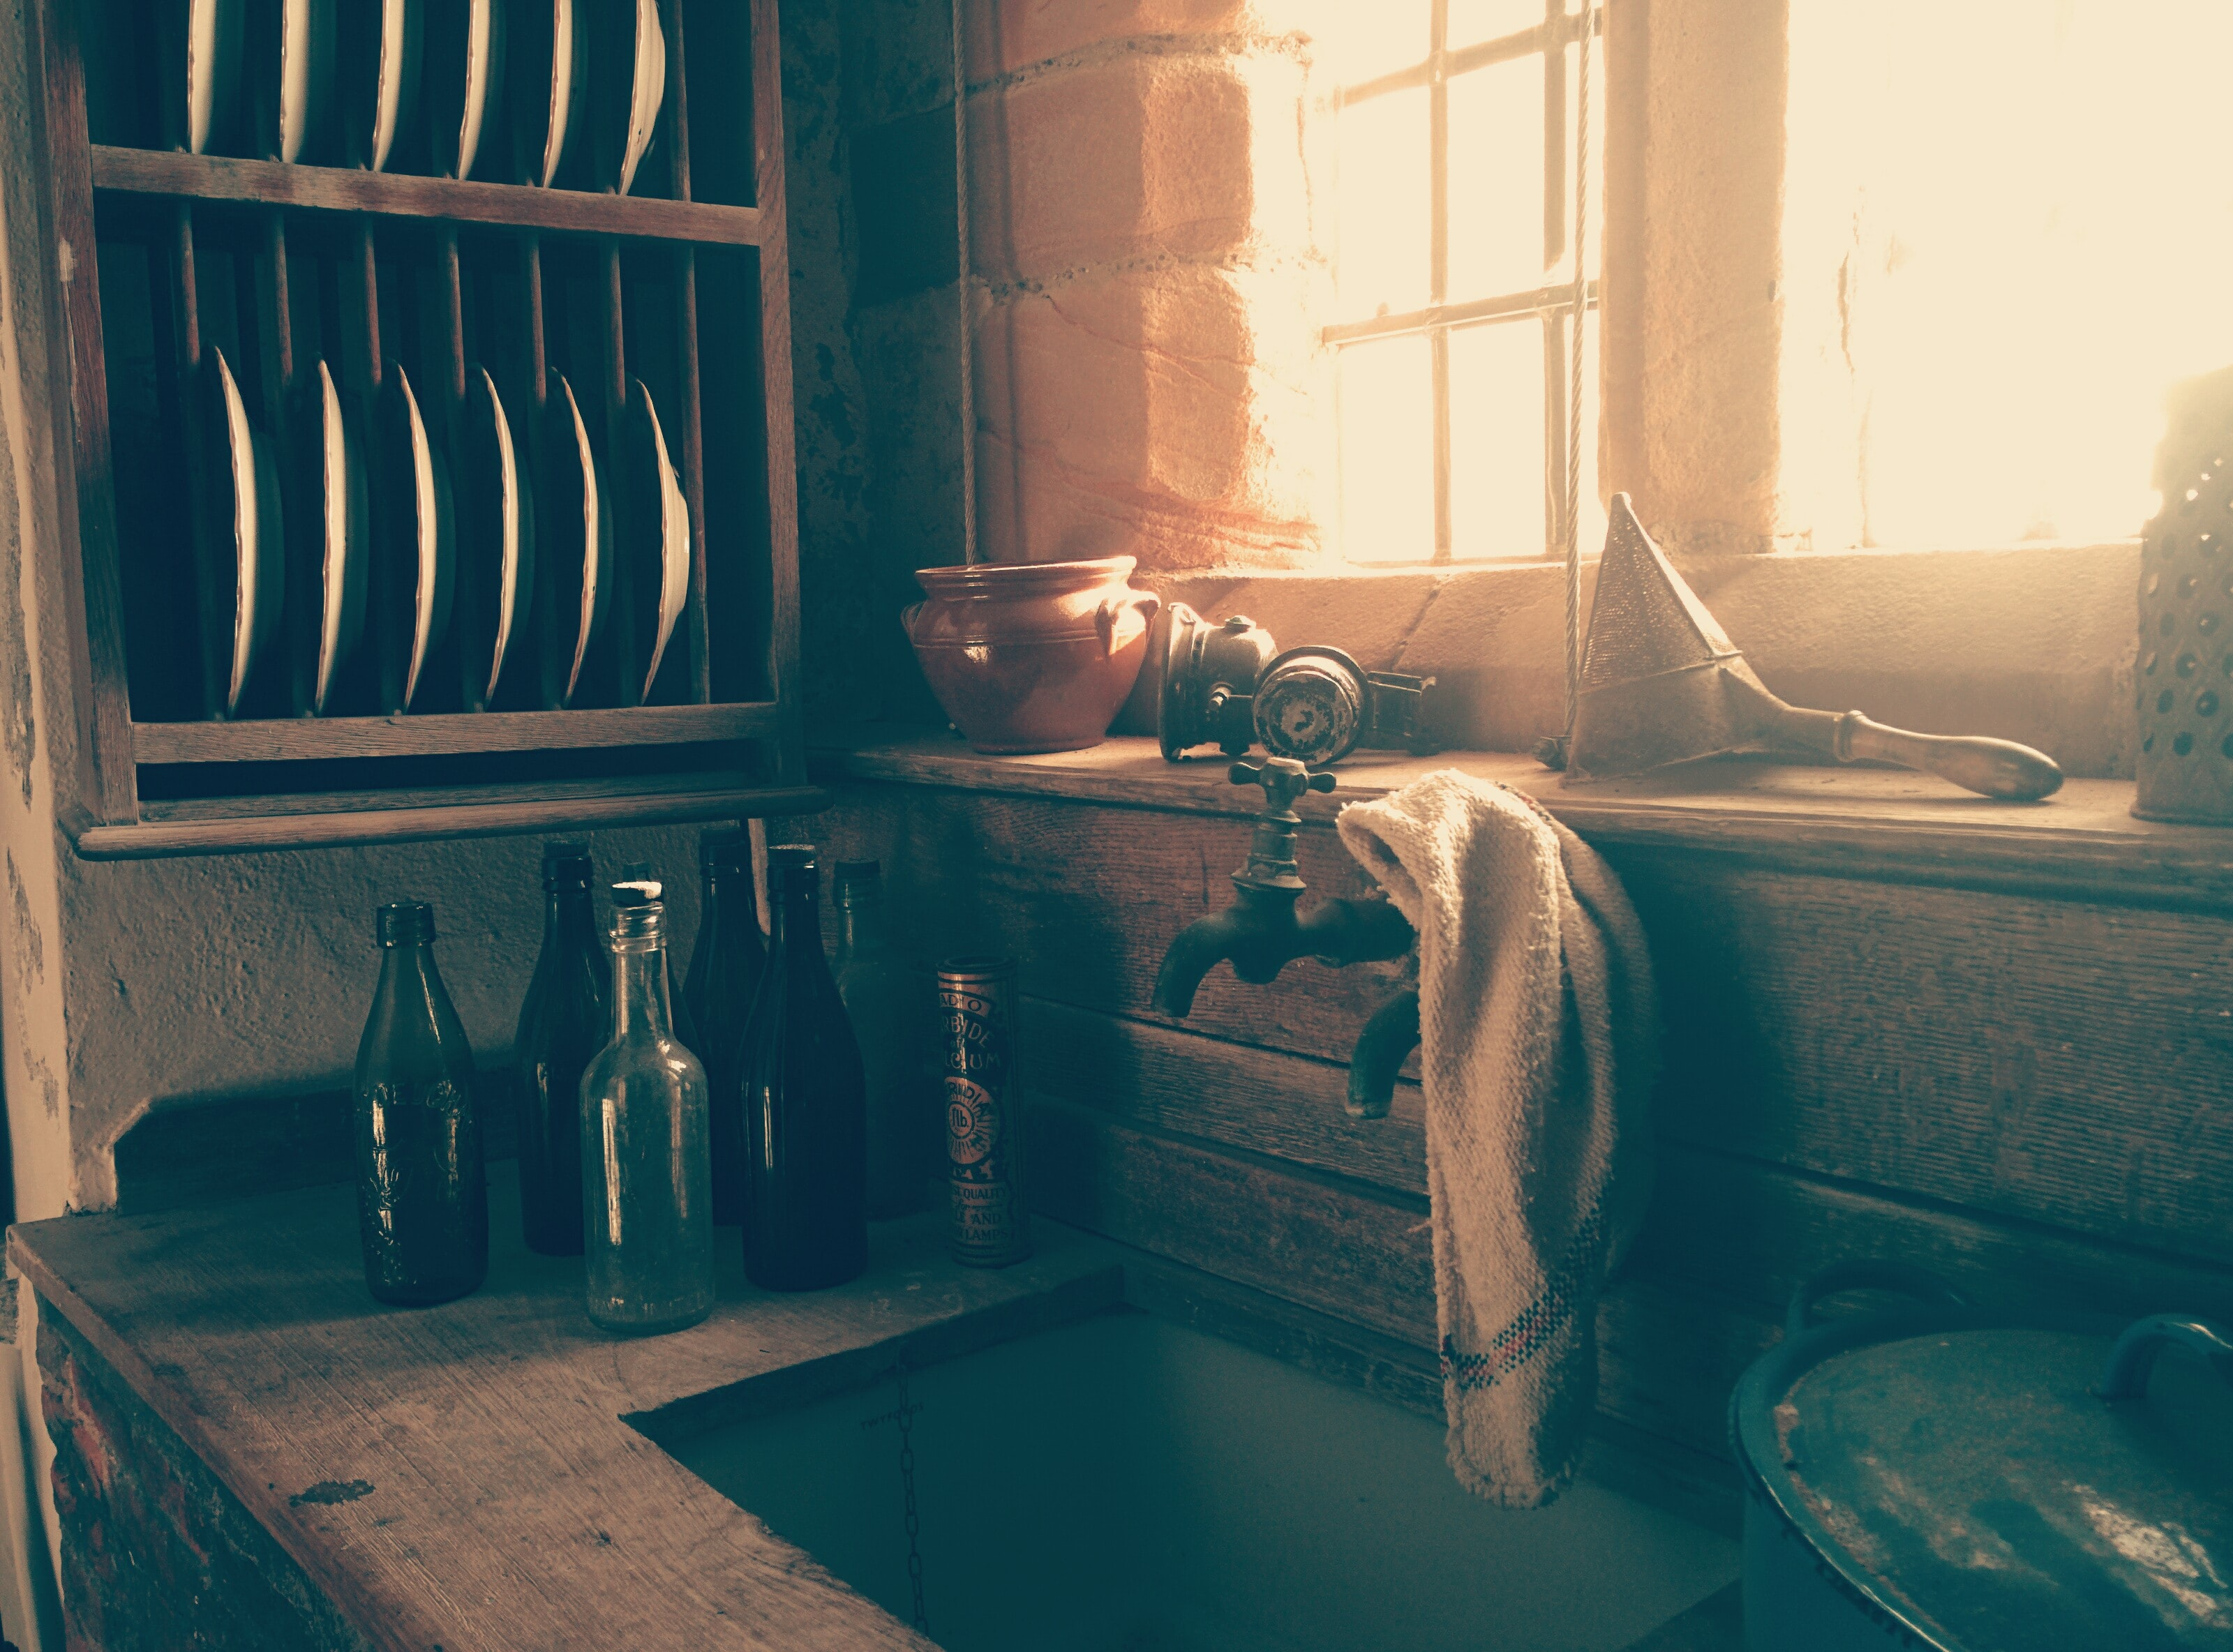 A rustic sink with bottles next to it, plates on a shelf, and a rag on the faucet